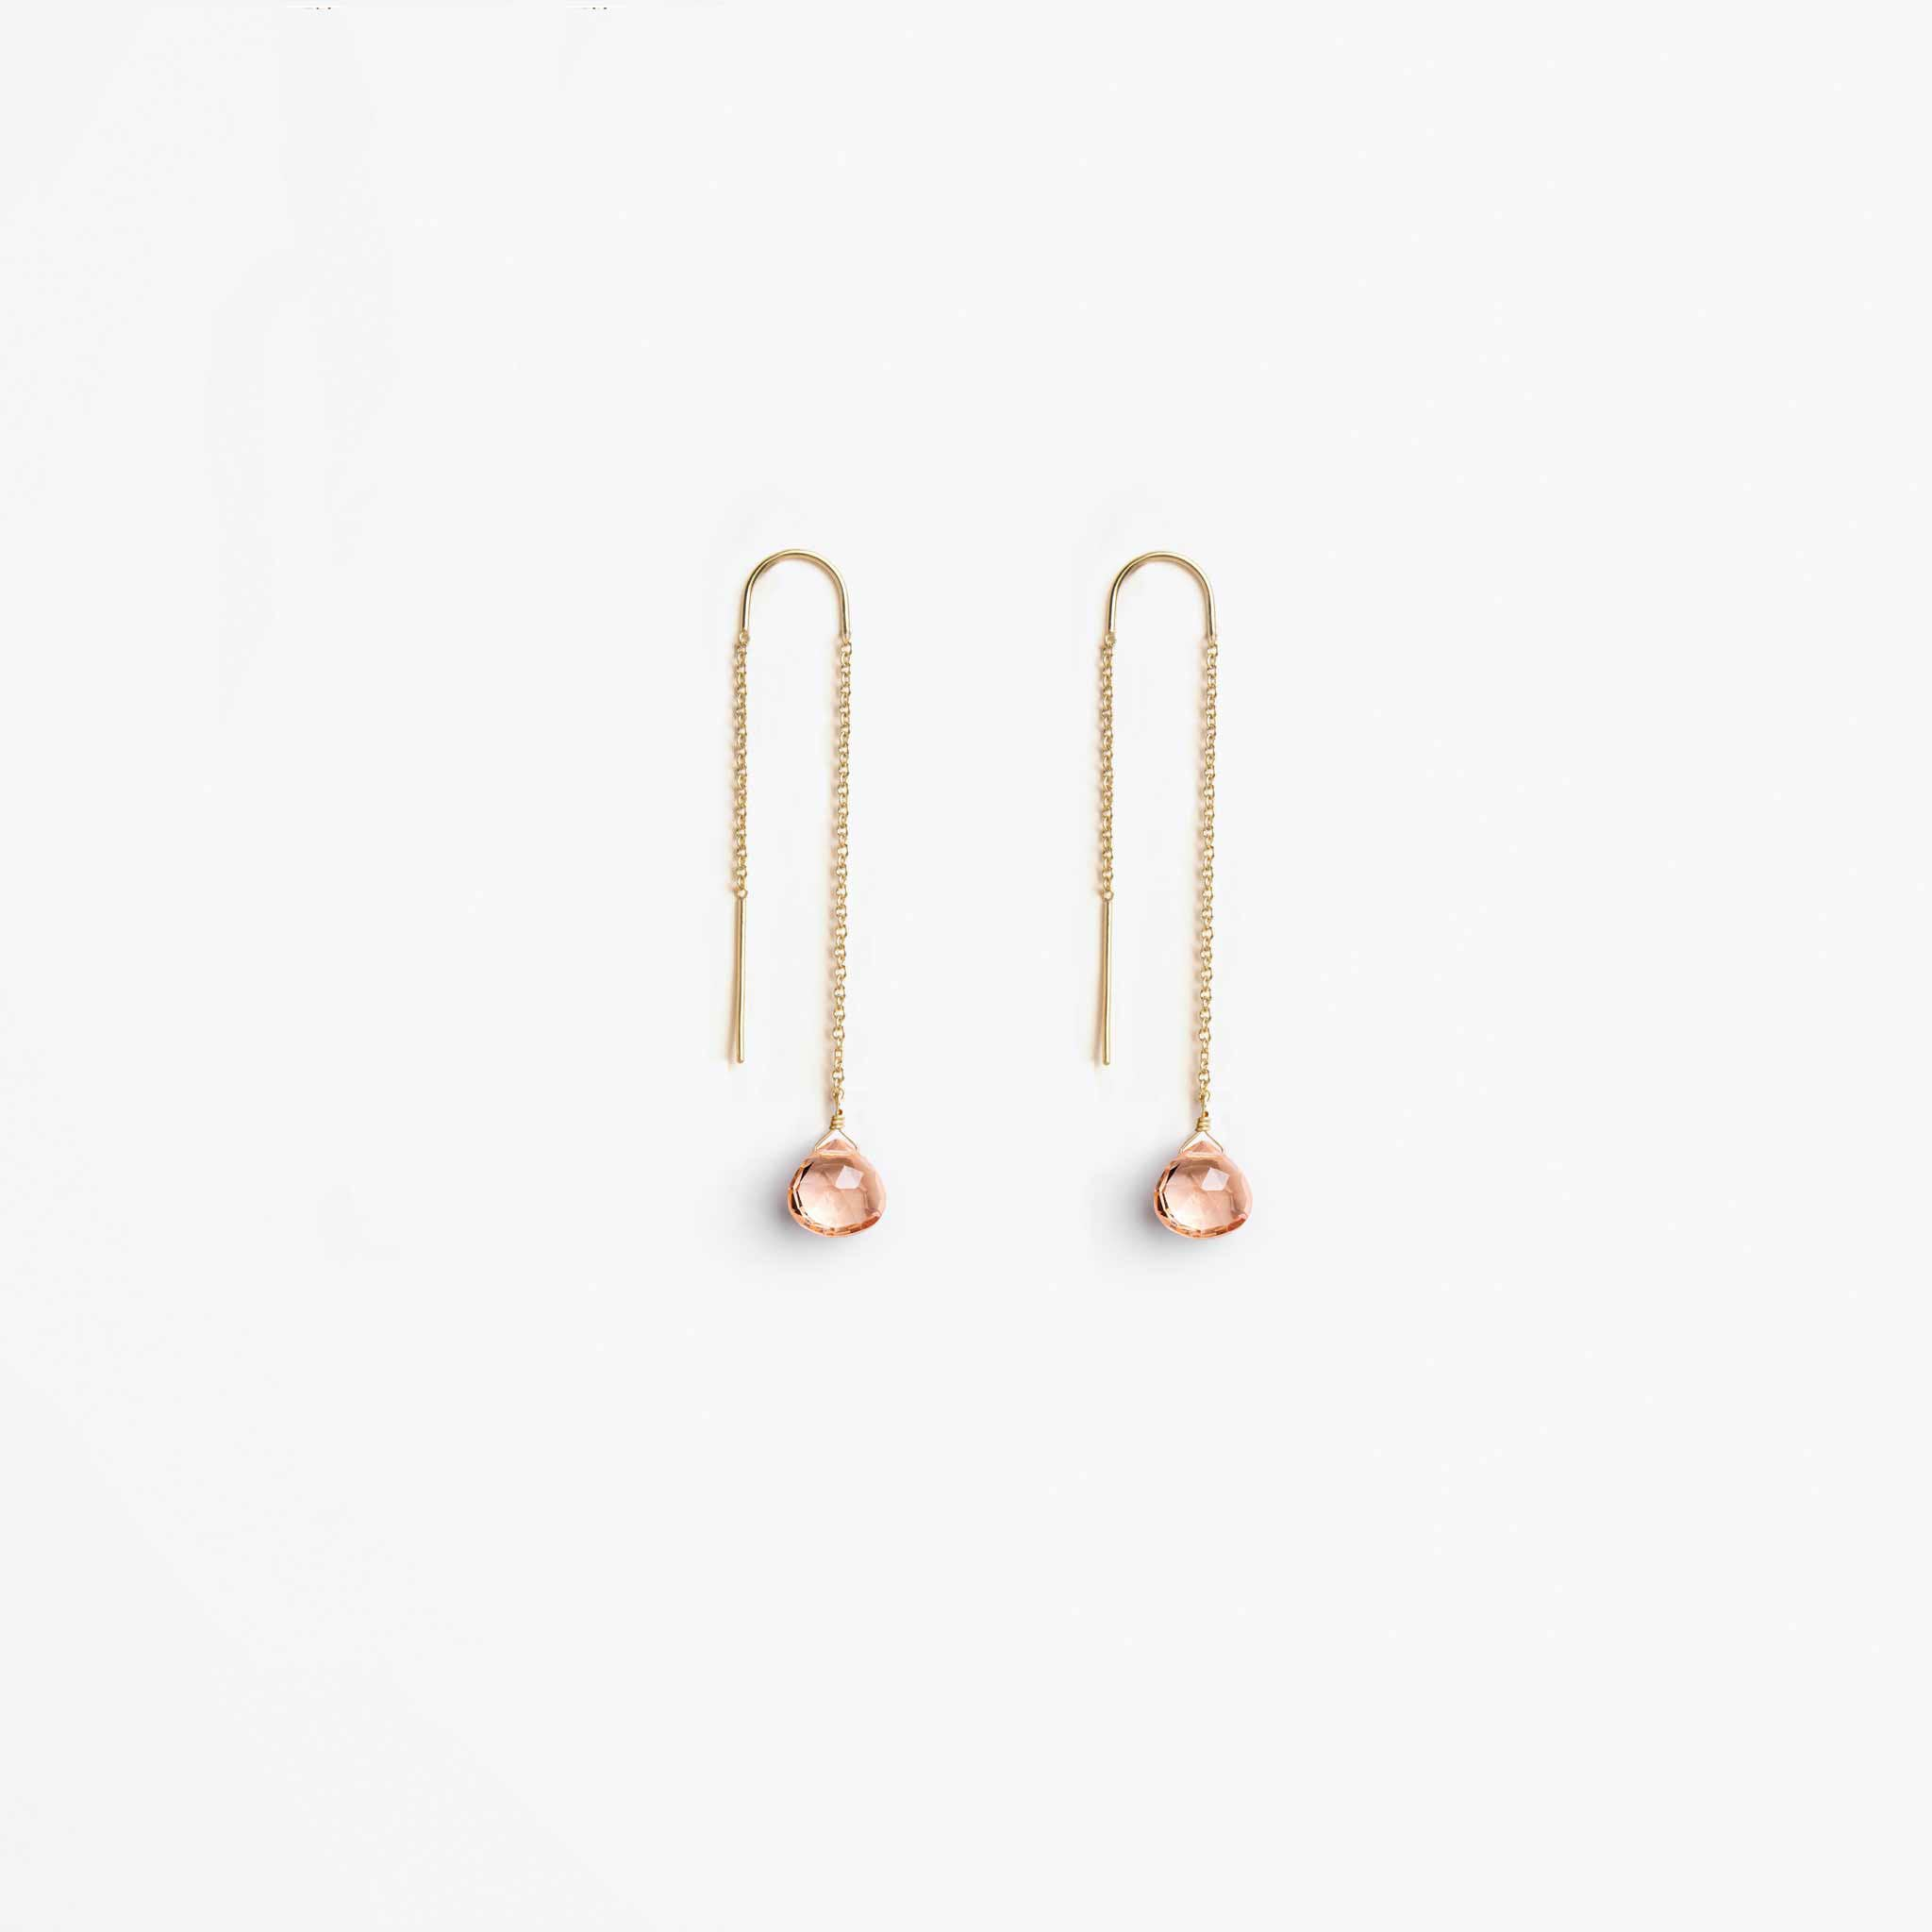 Wanderlust Life Ethically Handmade jewellery made in the UK. Minimalist gold and fine cord jewellery. the wedding collection, waterfall earrings, champagne quartz